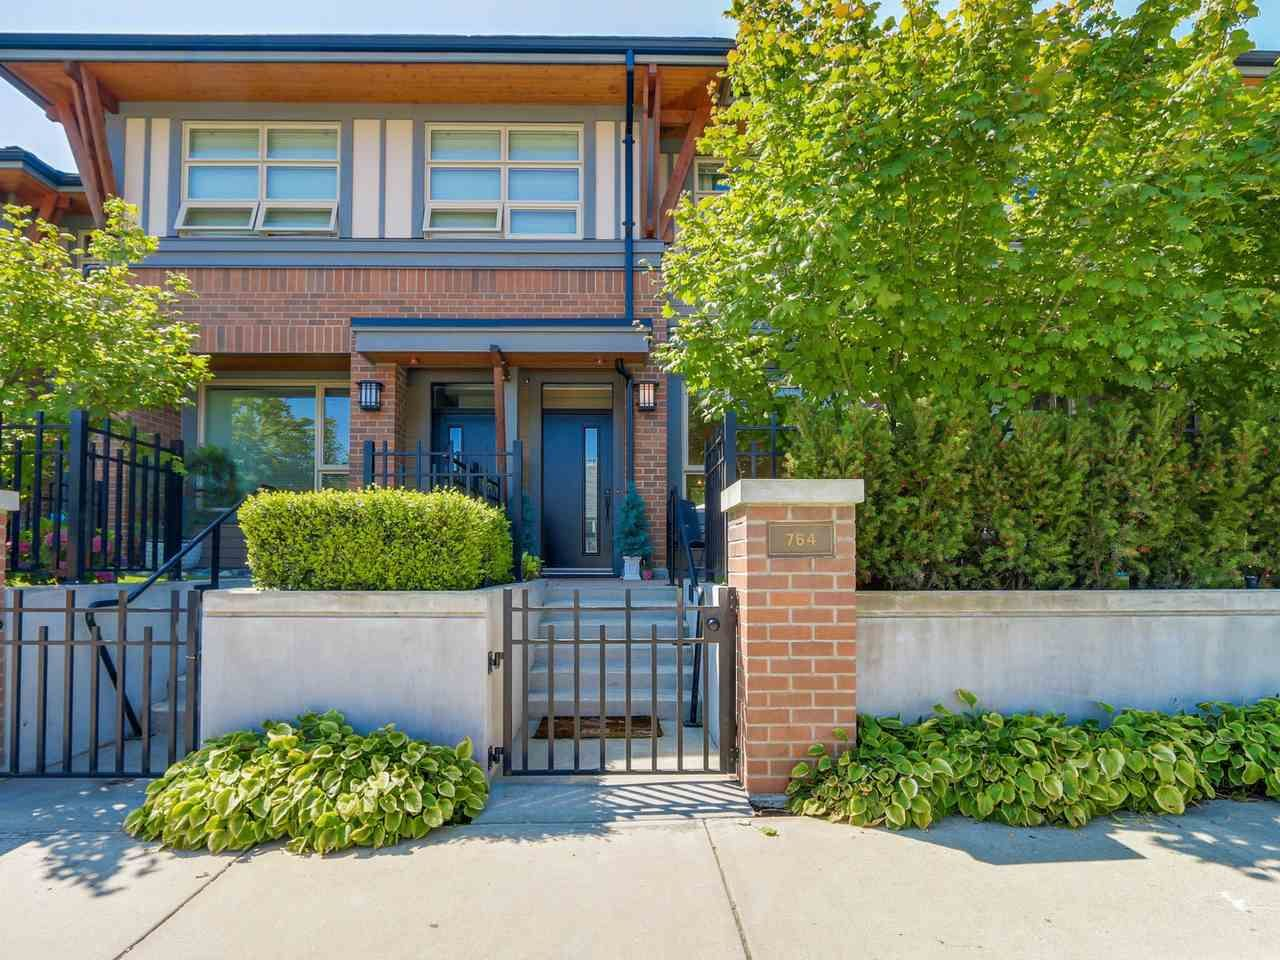 Main Photo: 764 E 29TH AVENUE in Vancouver: Fraser VE Townhouse for sale (Vancouver East)  : MLS®# R2142203